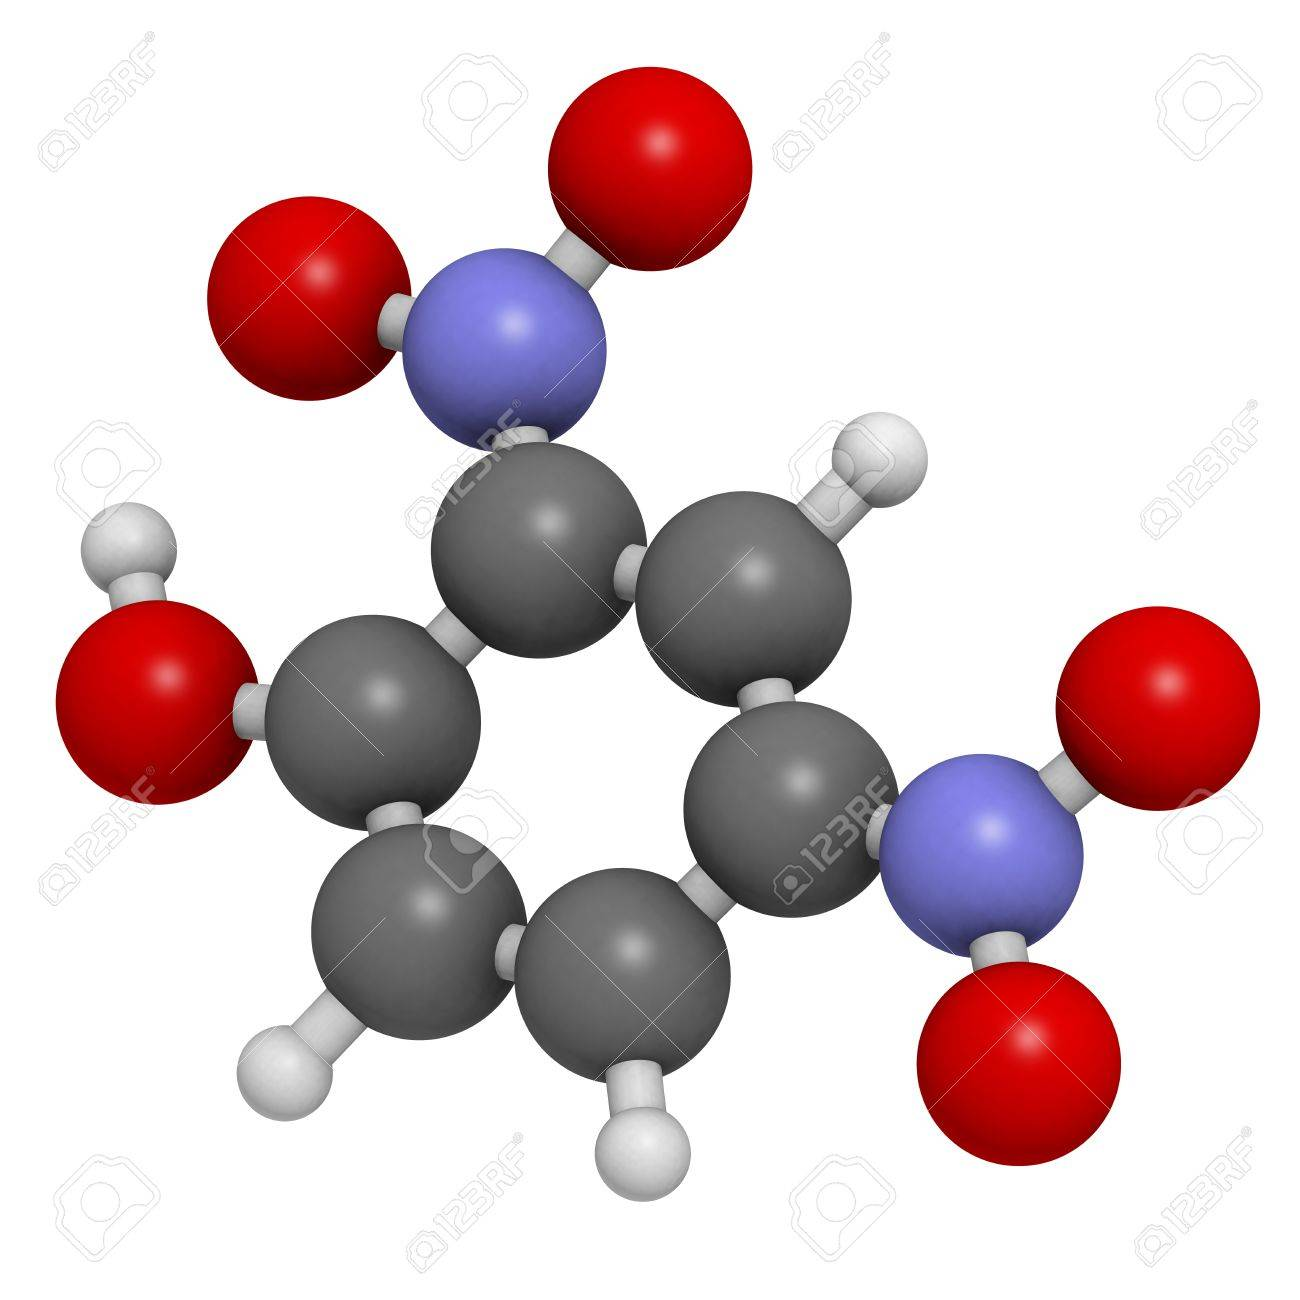 2,4-Dinitrophenol (DNP), molecular model  Atoms are represented